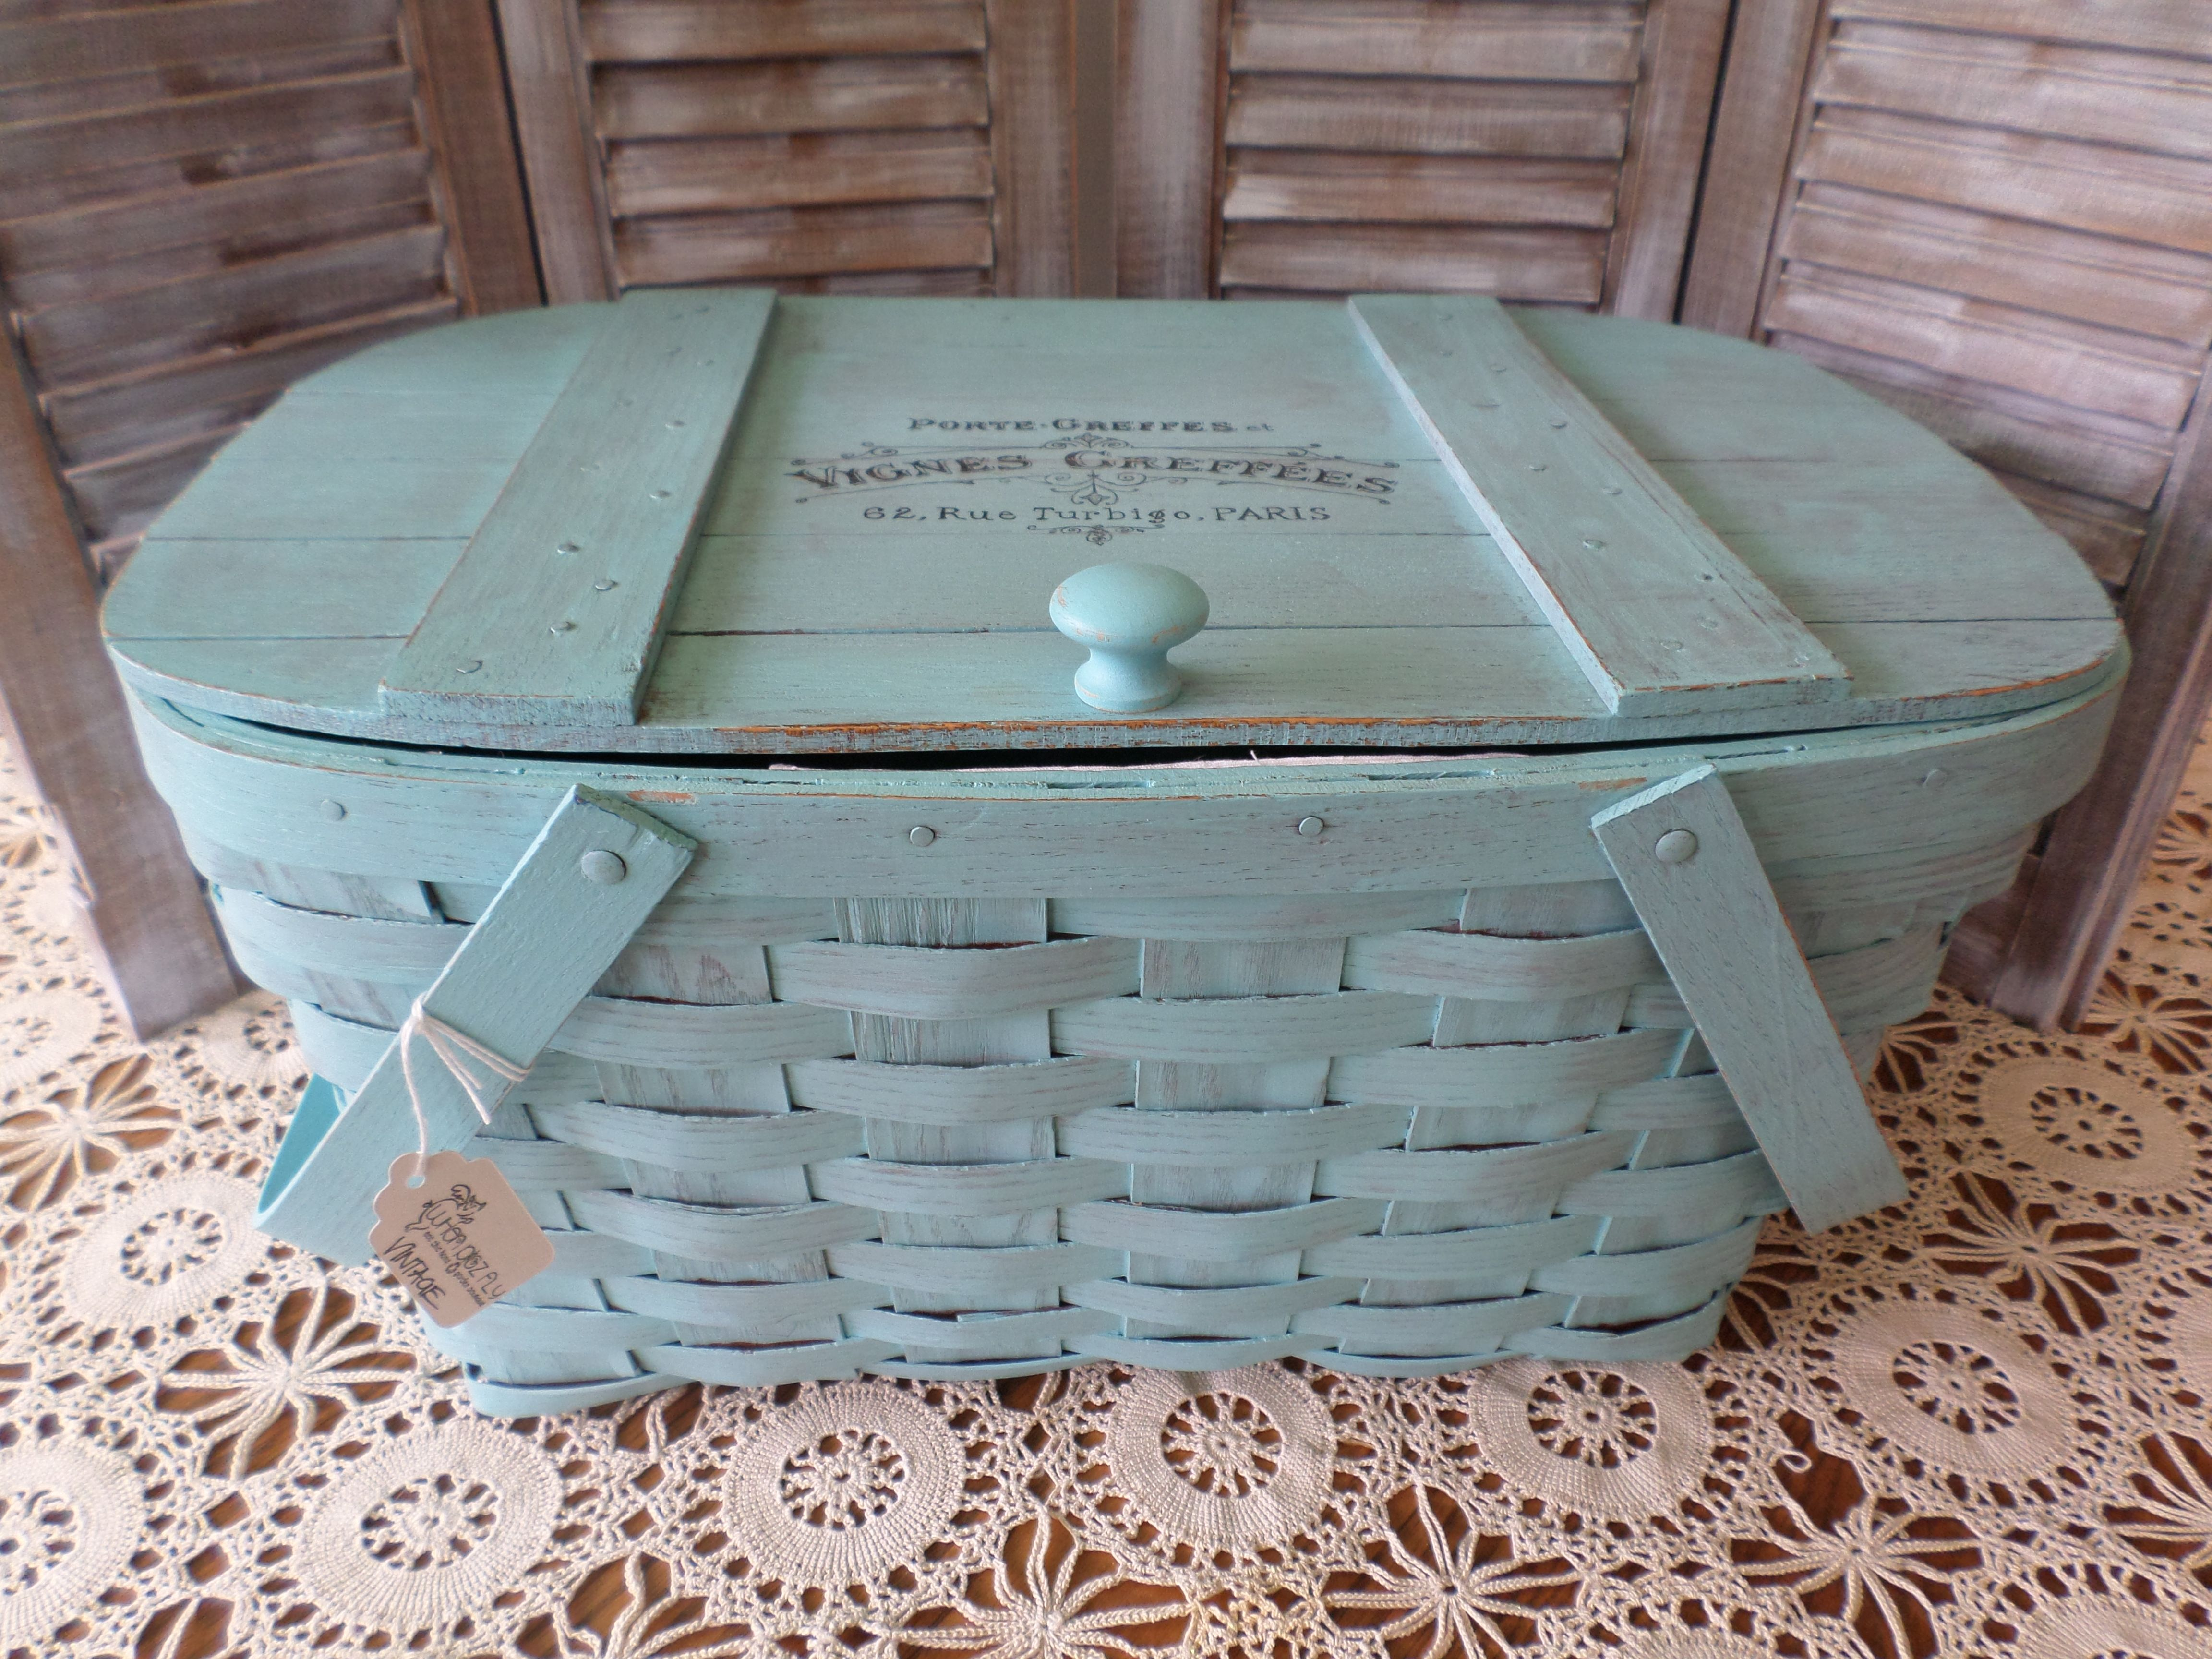 Upcycled picnic basket, painted, embellished with an image transfer ...